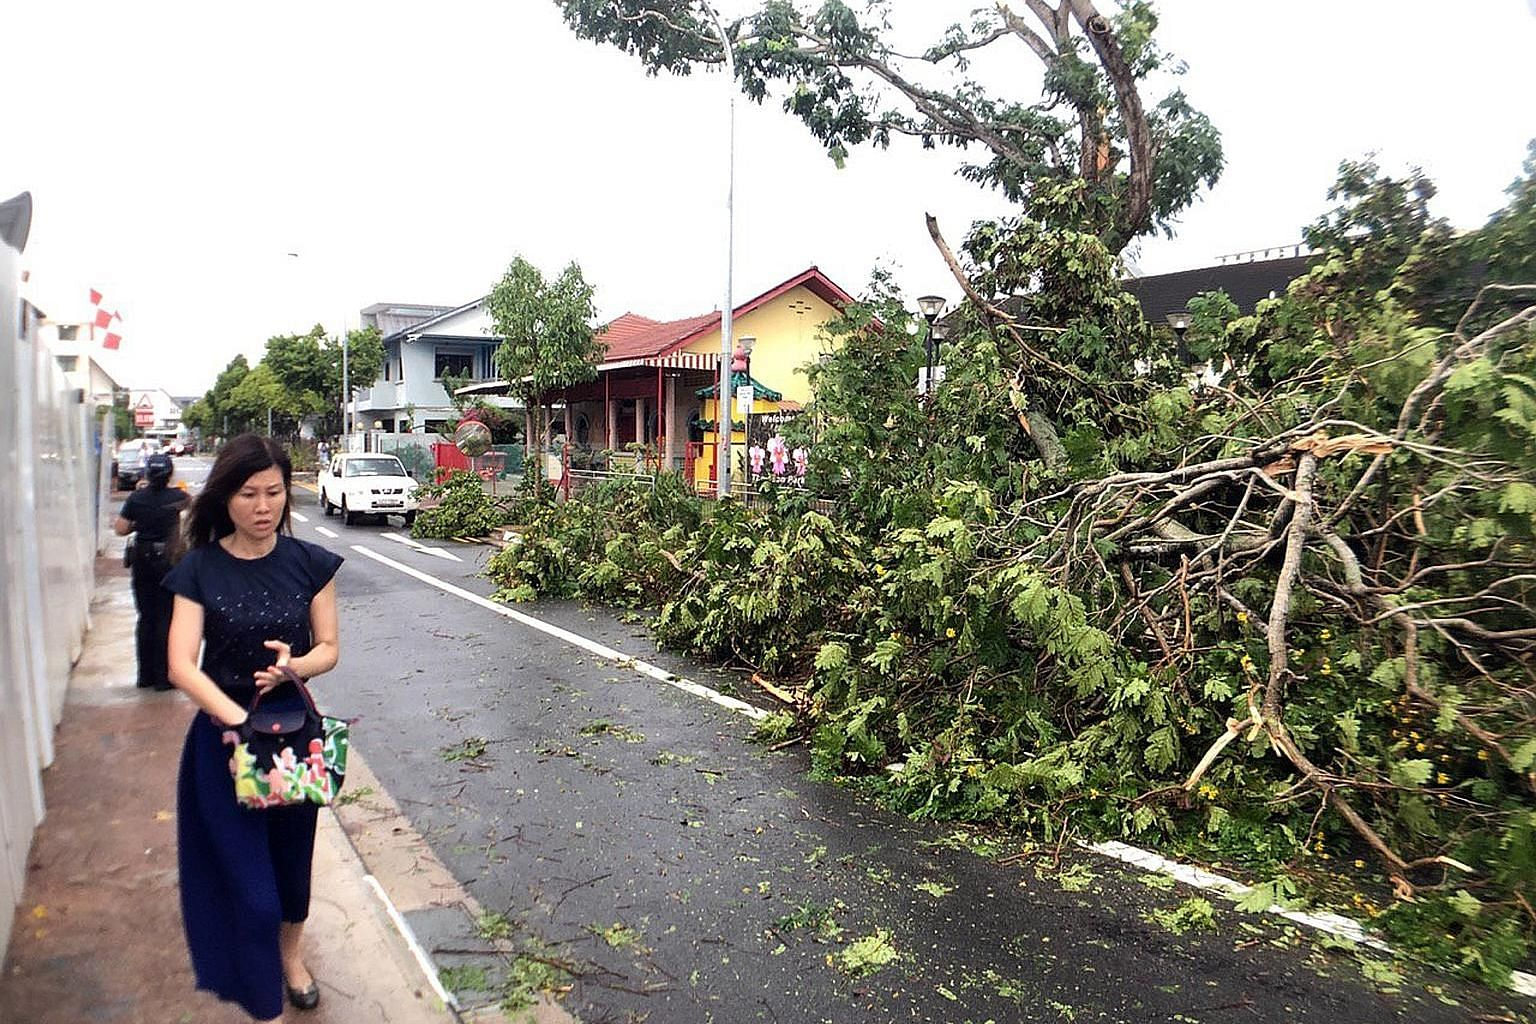 Thundery showers took down this tree at Thomson Park in Jalan Keli off Upper Thomson Road yesterday afternoon, obstructing part of the road. Showers are expected over Singapore in the next few days, the weatherman said yesterday, bringing some respit